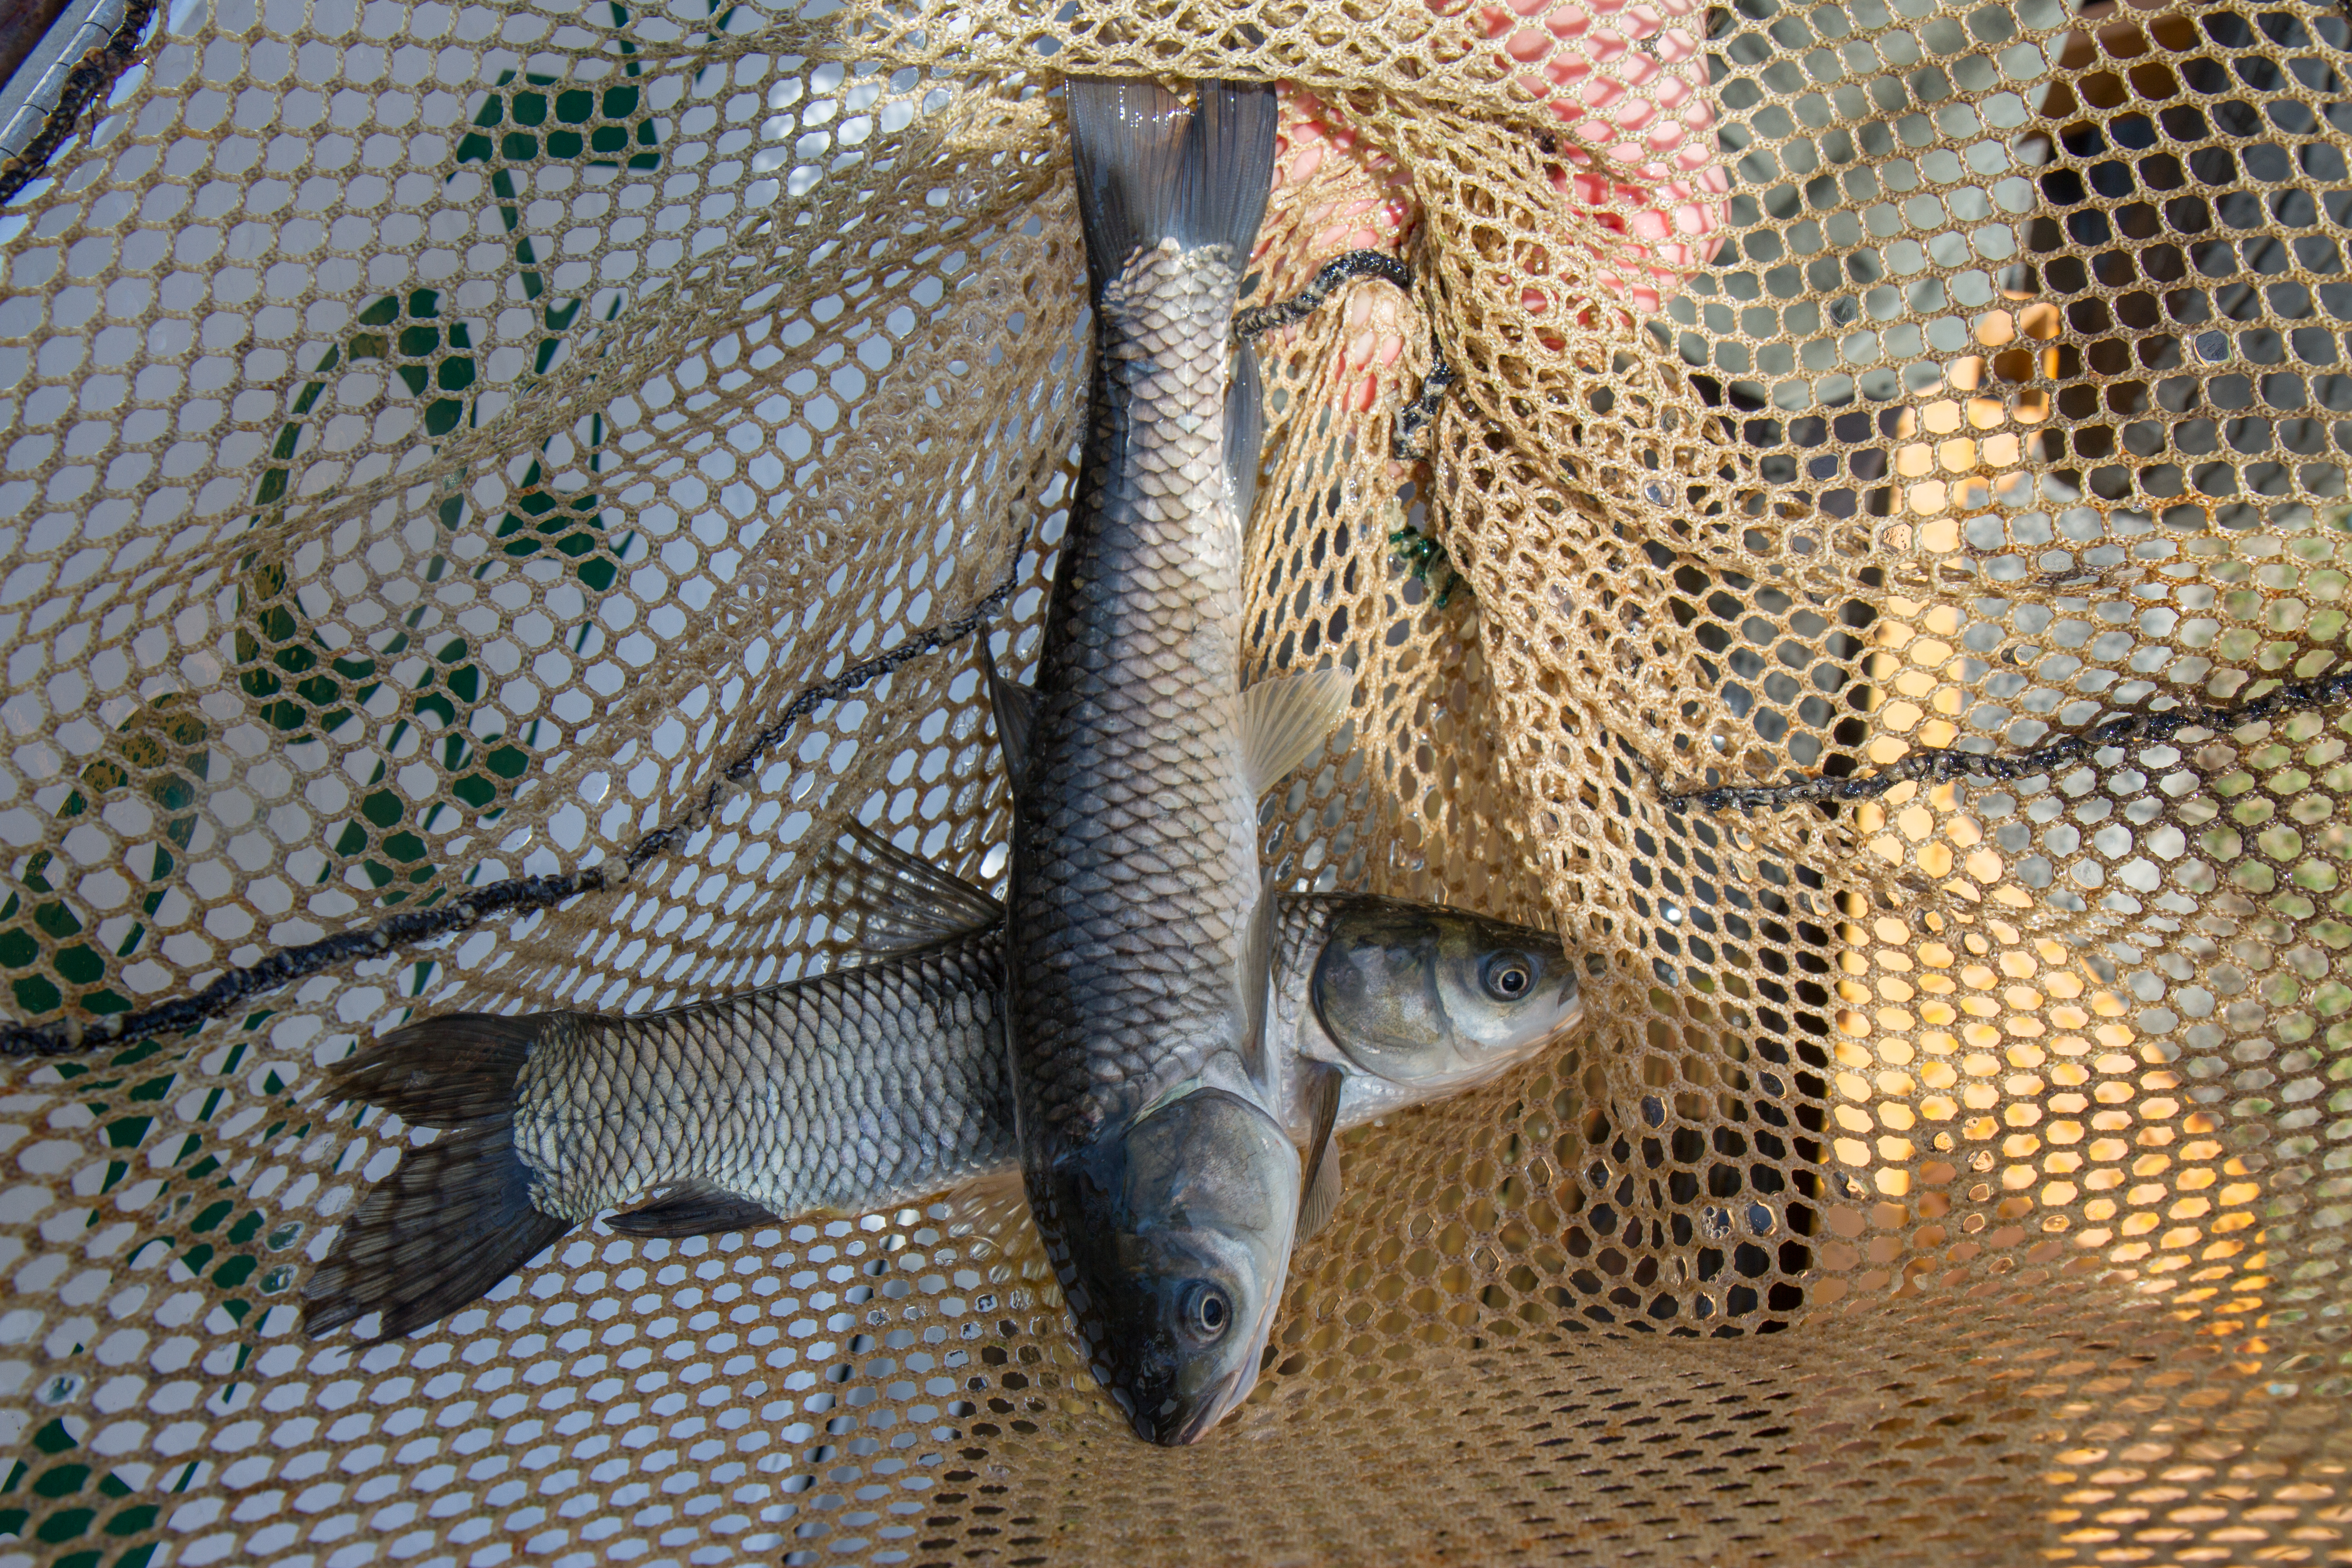 5 Facts: Candlewood Grass Carp